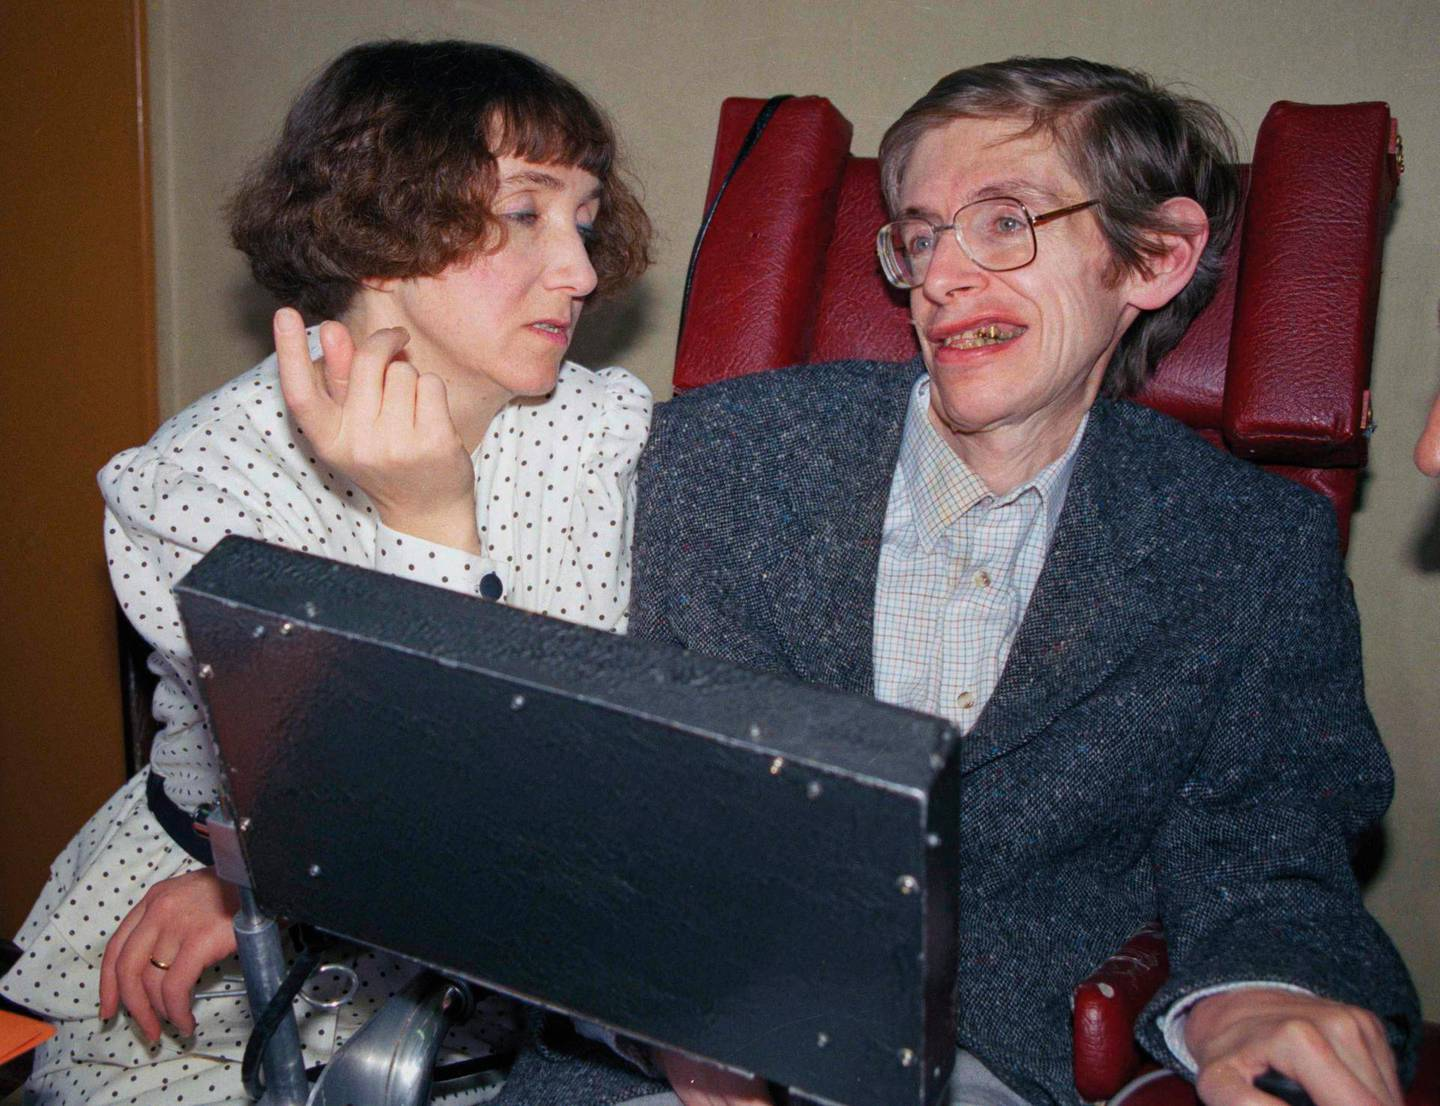 British astrophysicist Dr. Stephen Hawking, 47, answers newsmen with the help of his computer and the assistance of his wife Jane, in Paris, March 3, 1989.  Hawking, who has a motor neuron disease communicates with the help of a voice-equipped computer.  (AP Photo/Lionel Cironneau)